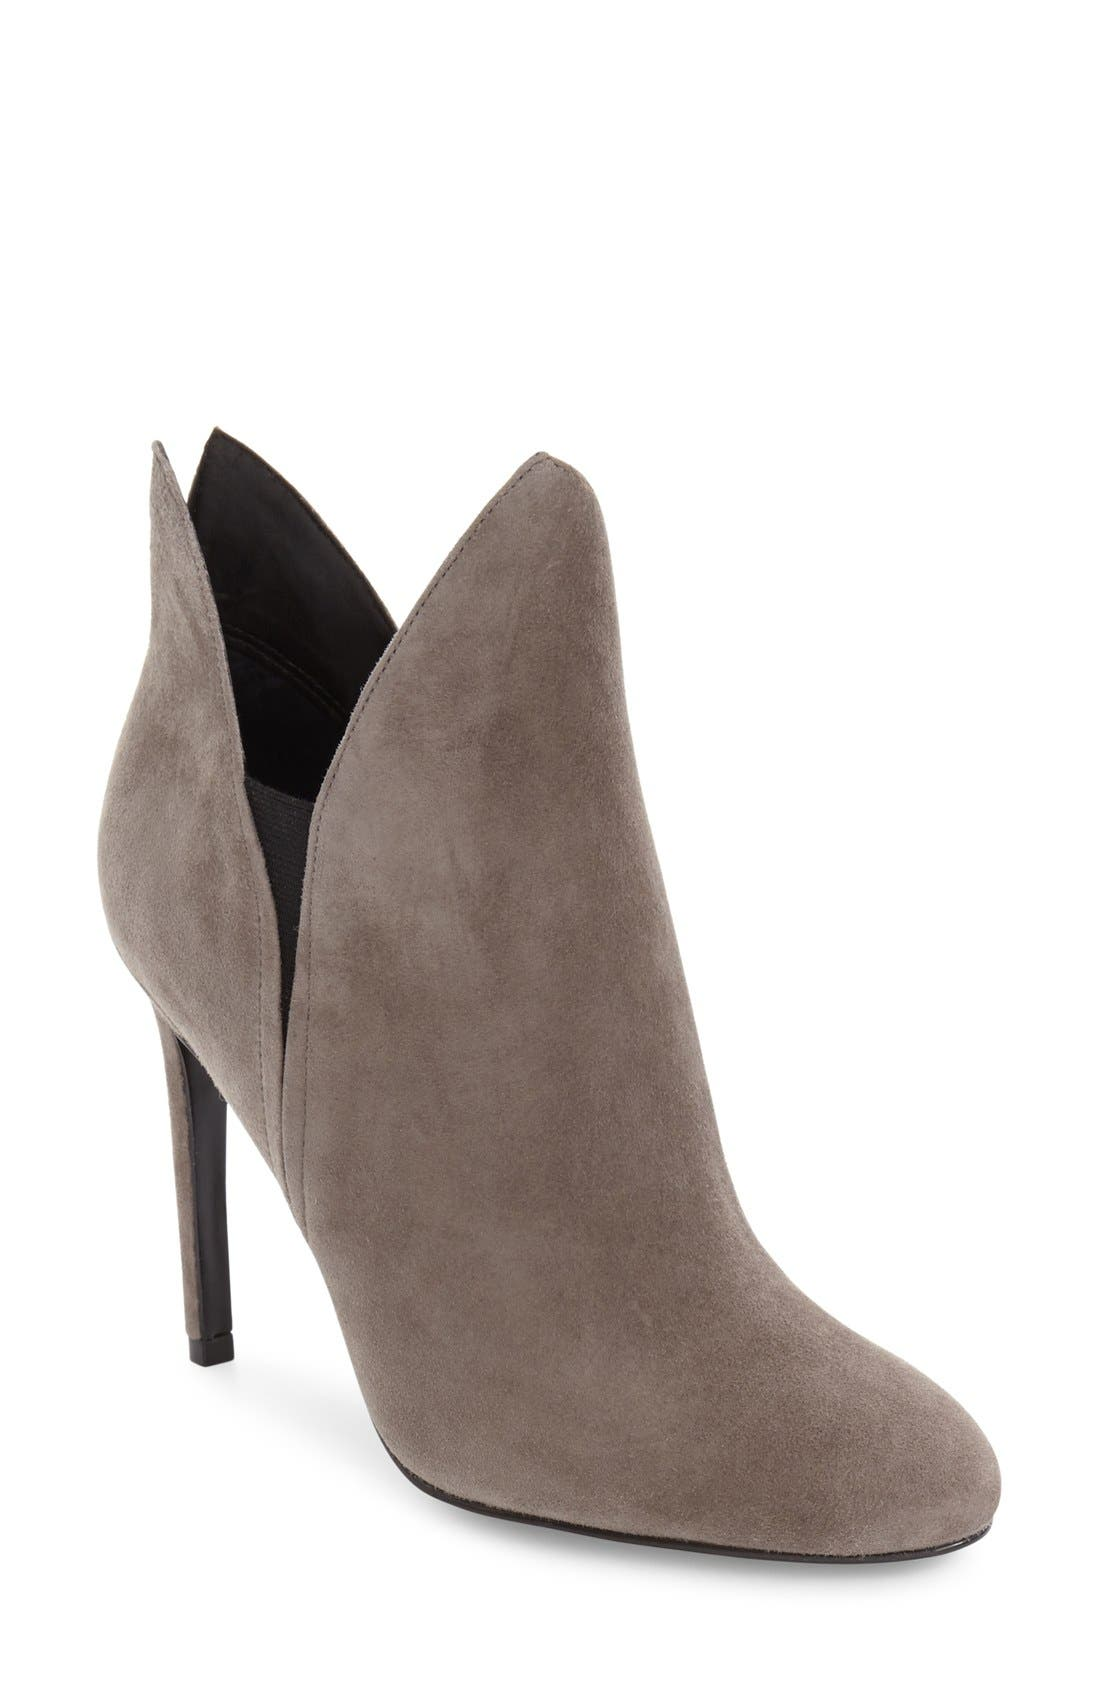 Alternate Image 1 Selected - KENDALL + KYLIE Madison Bootie (Women)